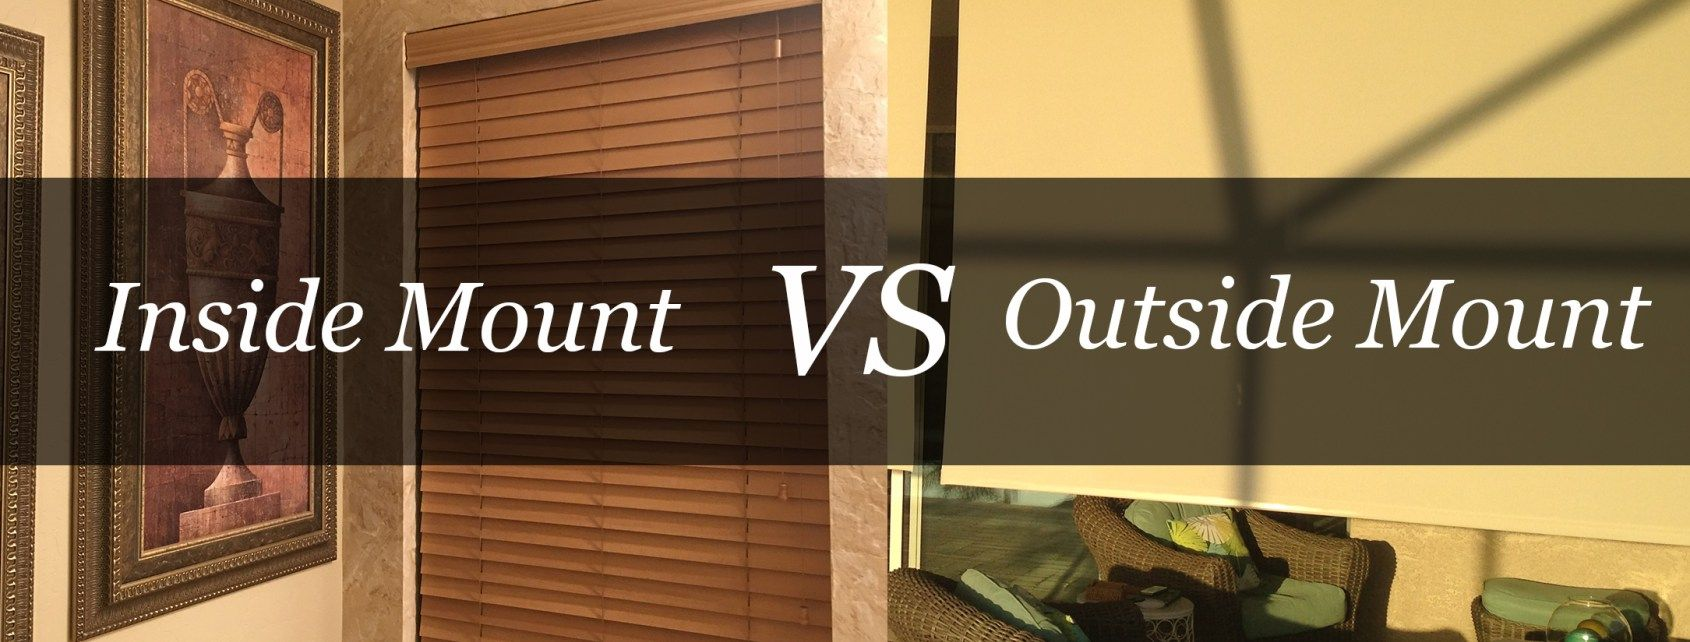 Inside Mounts Vs Outside Mounts For Blinds And Shades